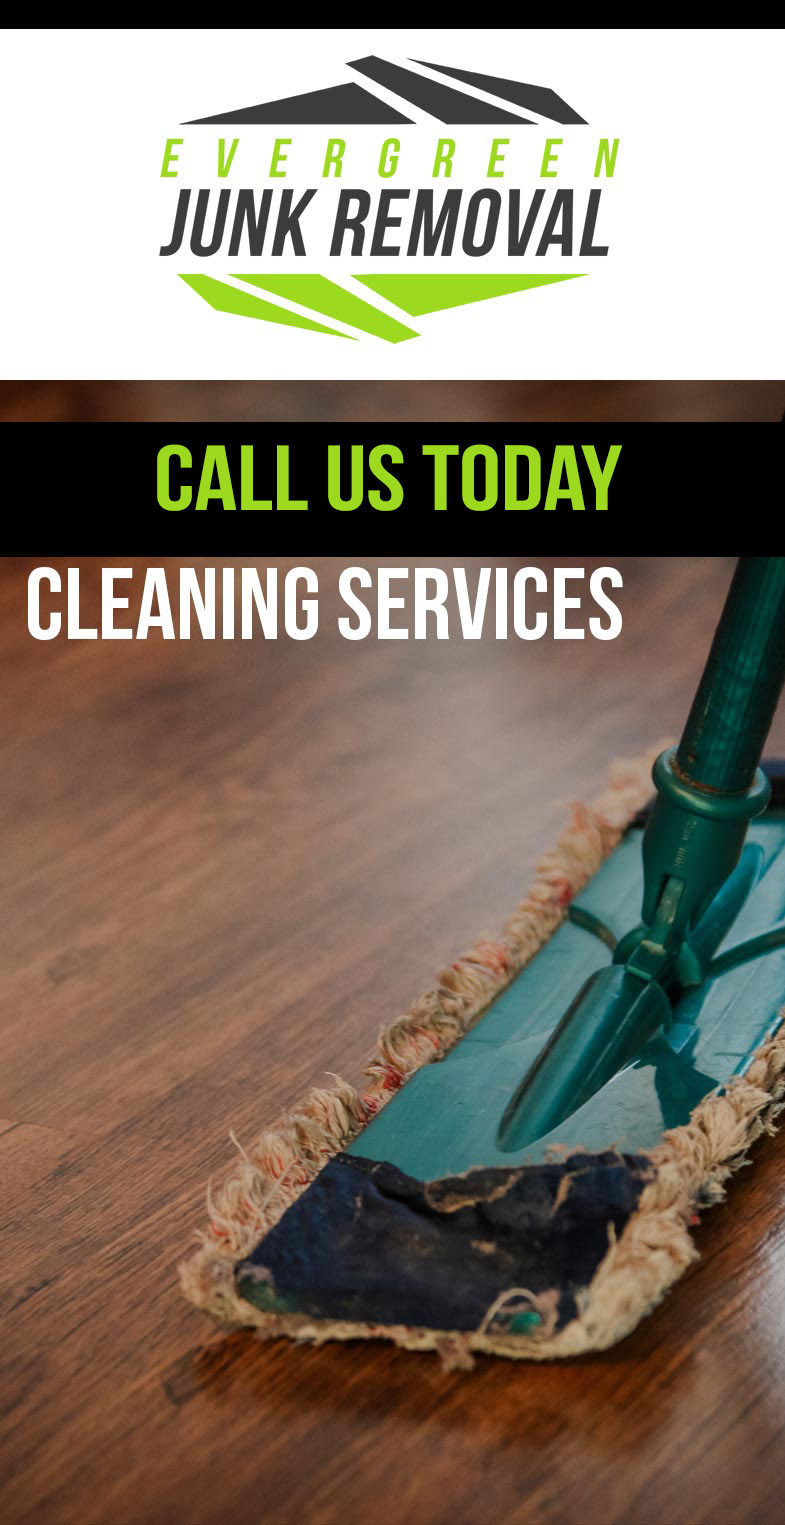 Jupiter Inlet Colony Florida Maid Services